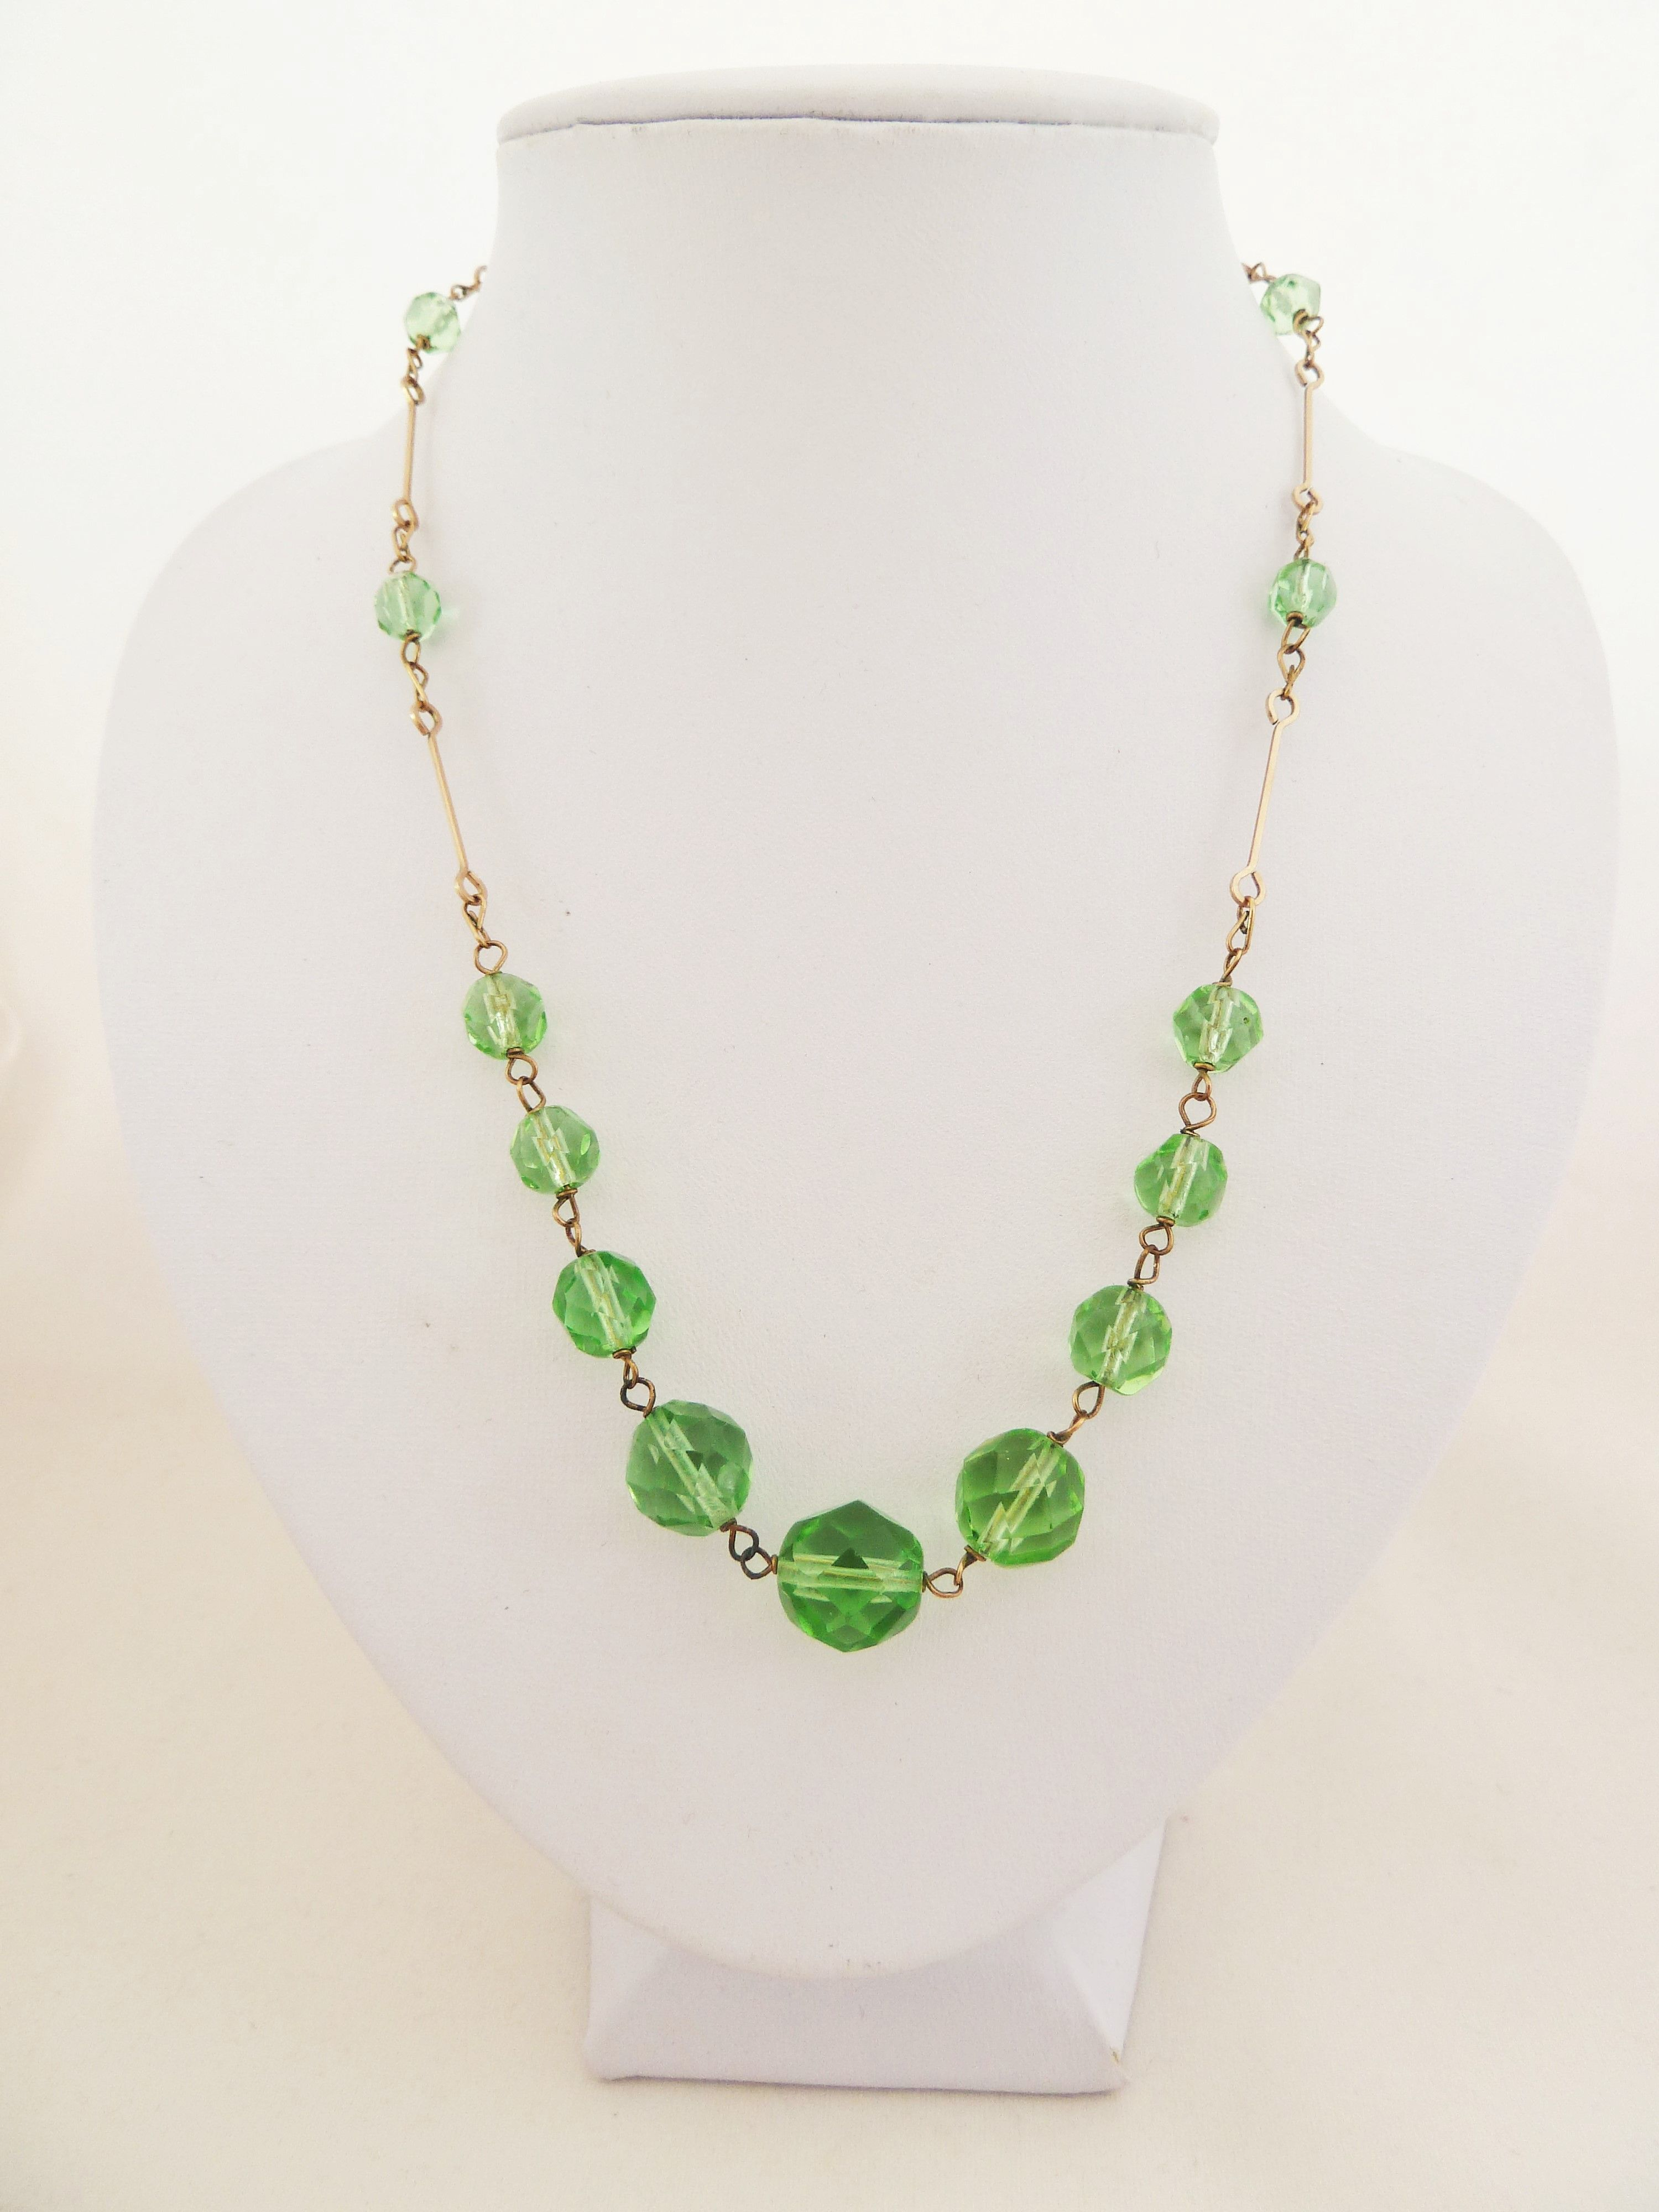 Peridot green faceted glass bead rolled gold link necklace. Art Deco 20s/30s